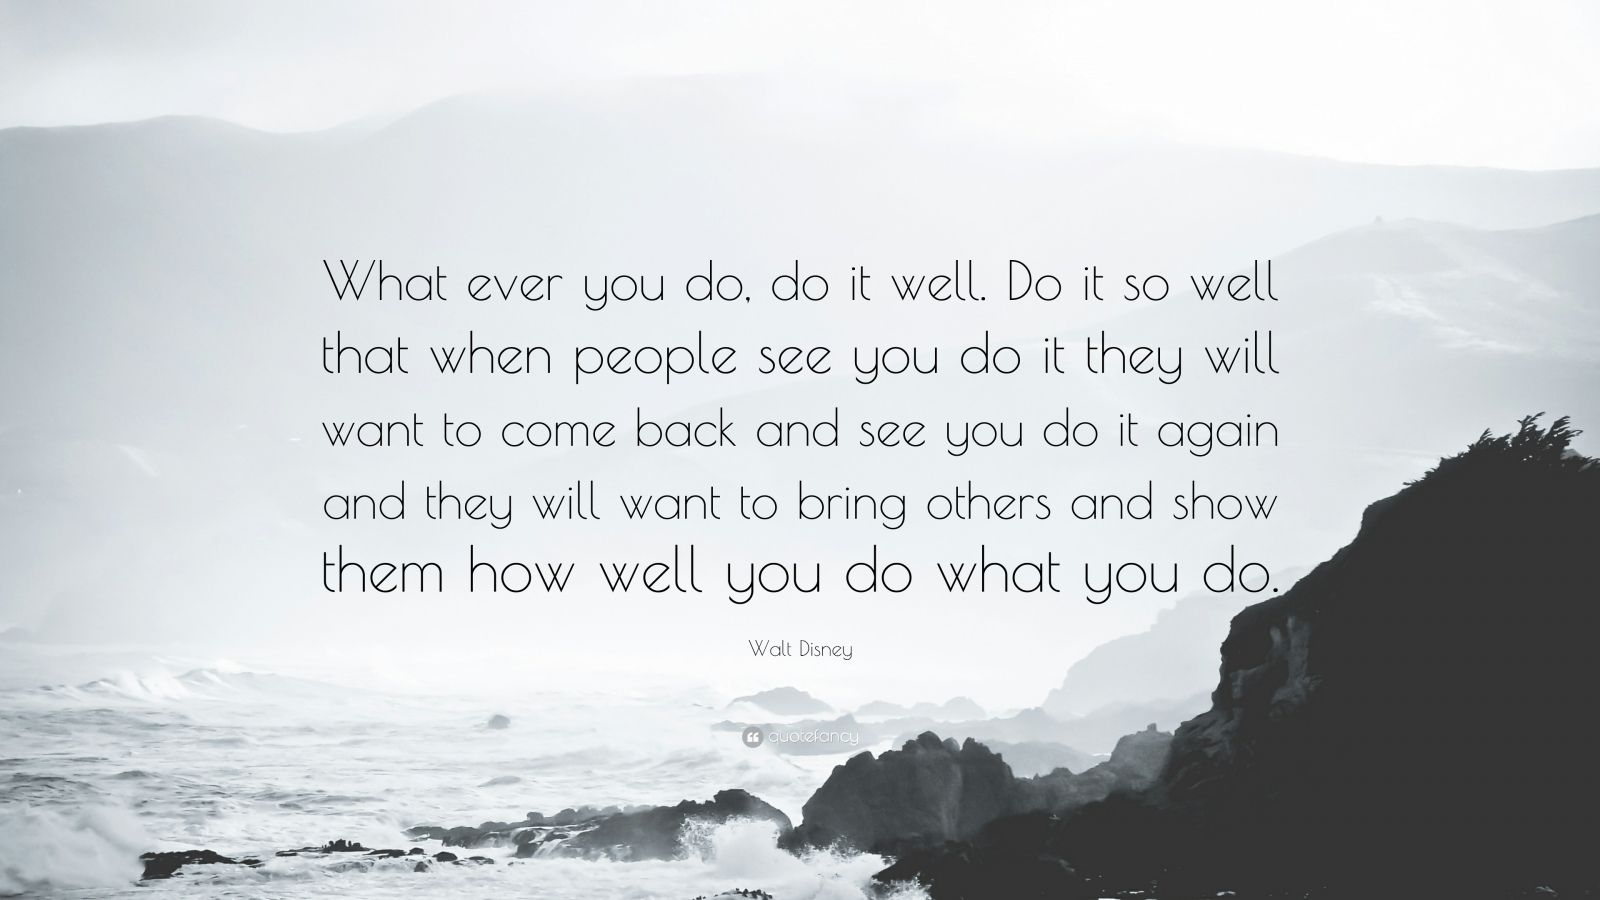 """Walt Disney Quote: """"What ever you do, do it well. Do it so well that when people see you do it they will want to come back and see you do it again and they will want to bring others and show them how well you do what you do."""""""